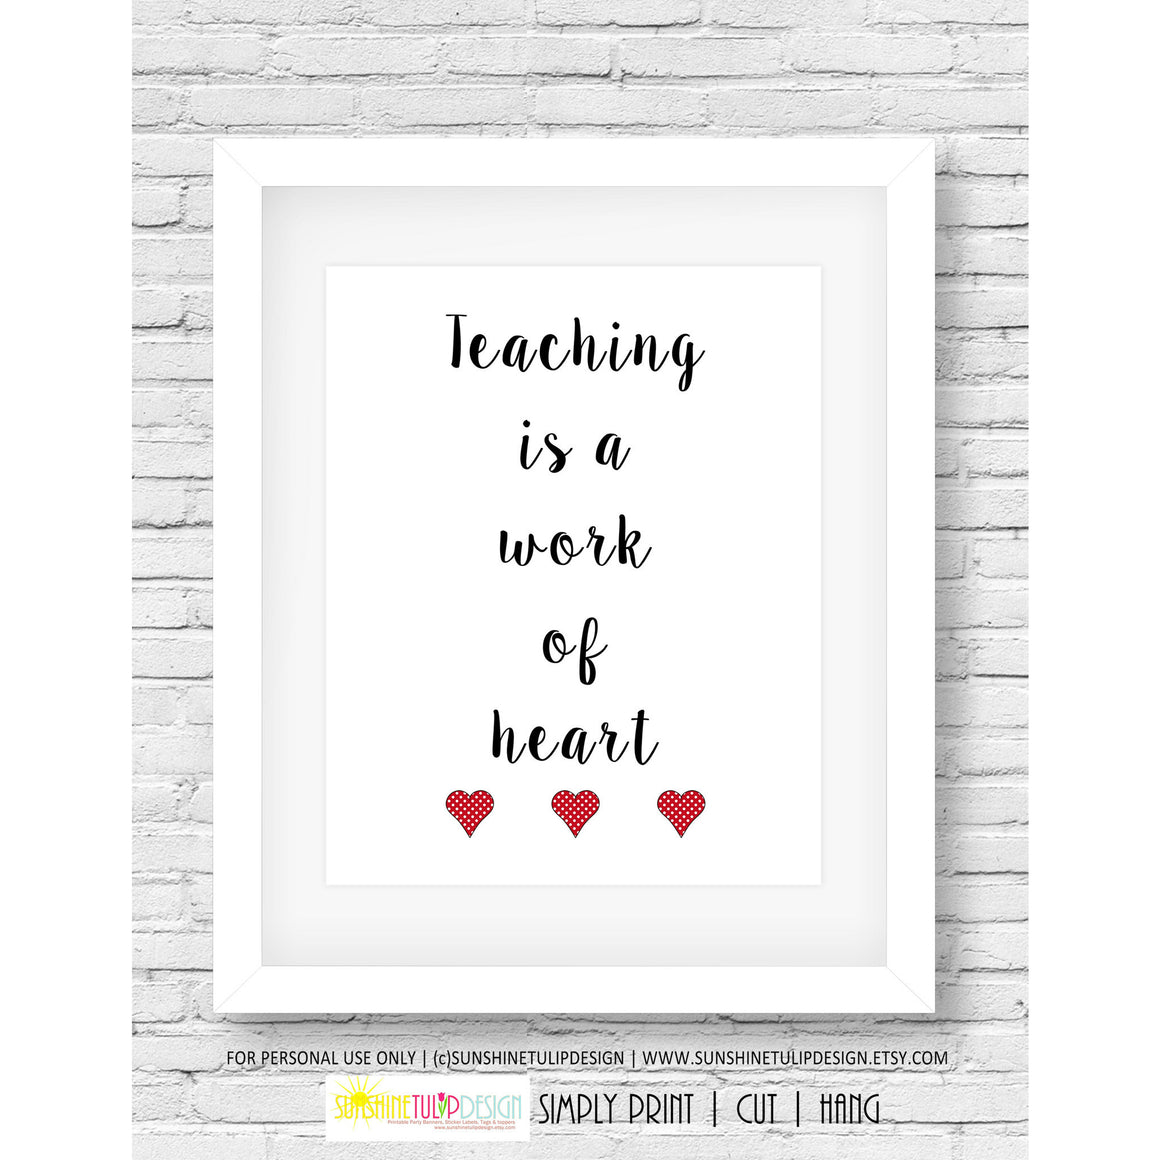 Printable Teacher Appreciation Wall Print, Teaching is a Work of Heart Decor Print Art for Classroom or Home - Sunshinetulipdesign - 1